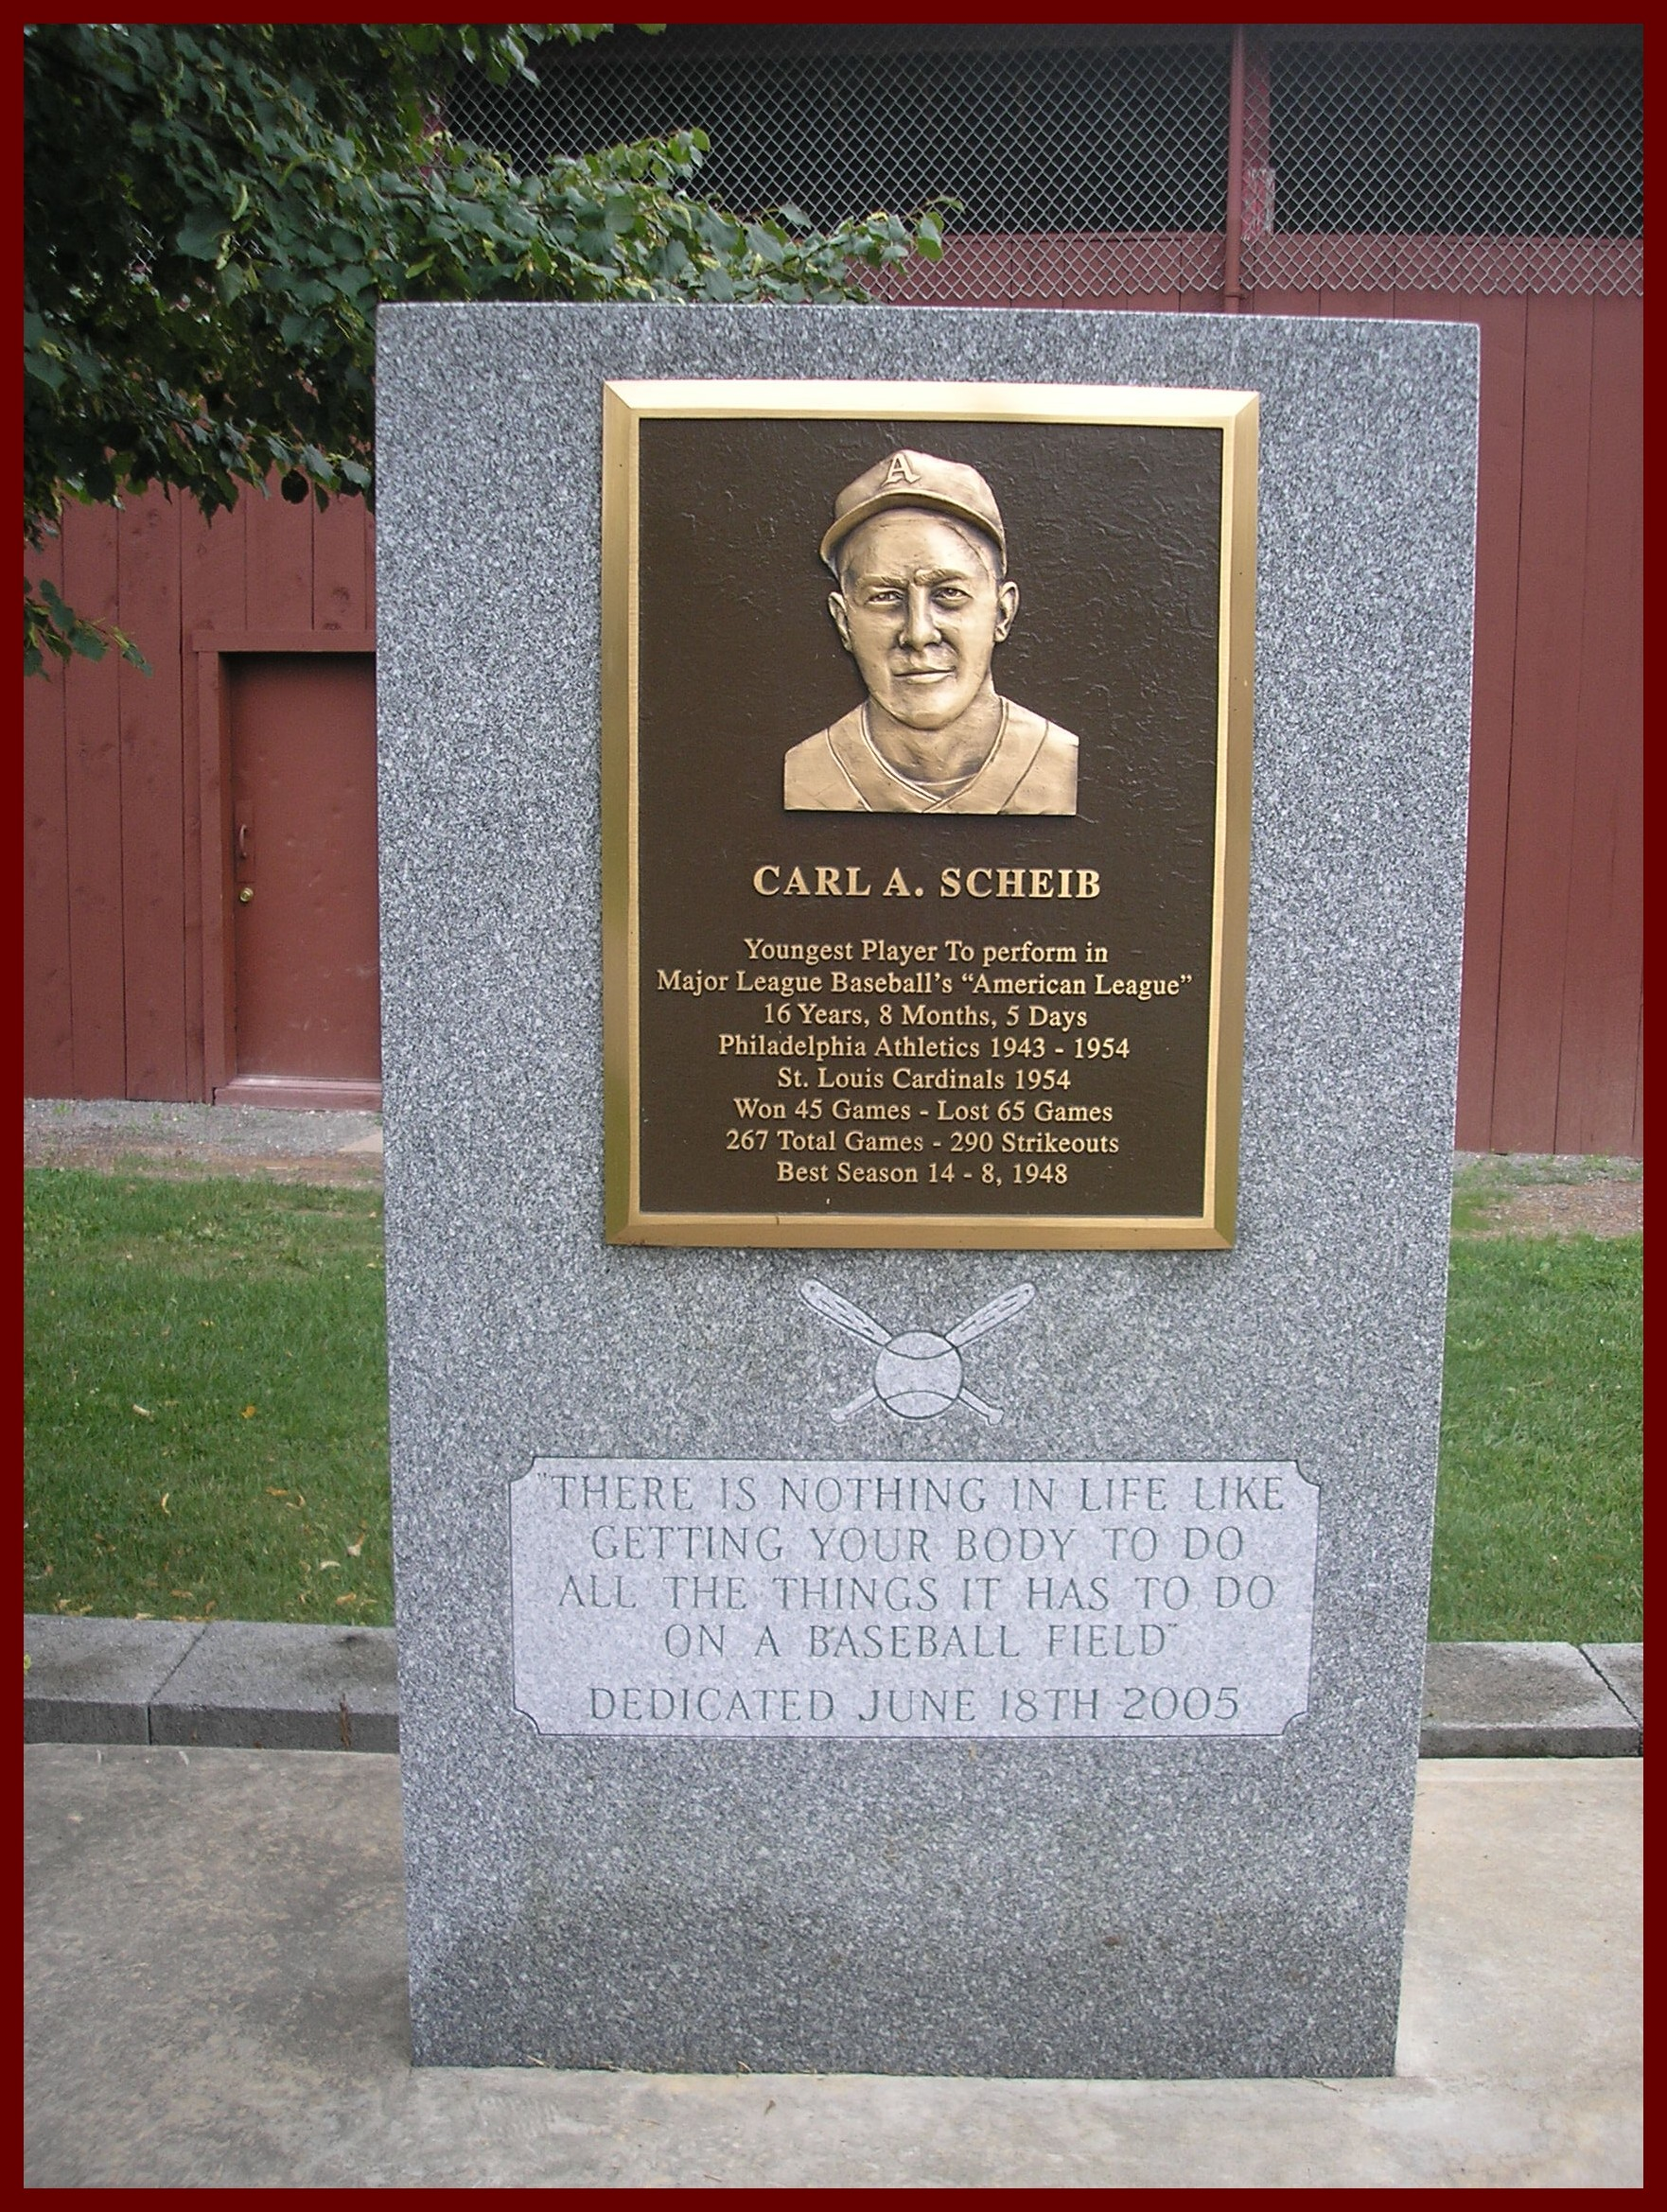 Gratz Carl A Scheib Monument Dedicated 2005